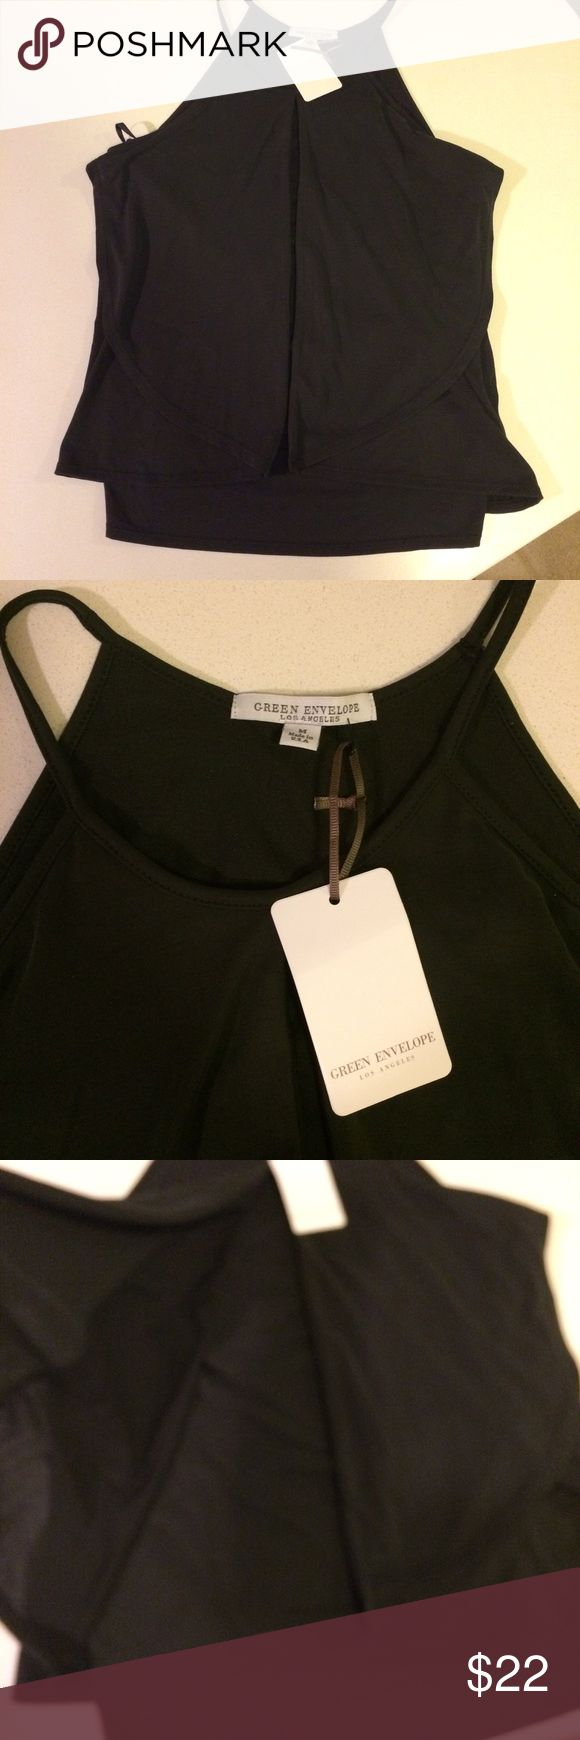 Black drape front tank by Green Envelope sz Medium Ultra soft Green Envelope Los Angeles black tank. Adorable drape front that lays so nicely. Made of 65% modal, 35% polyester. Size Medium. You will not believe how soft it is! No trades but offers welcome. green envelope Tops Tank Tops